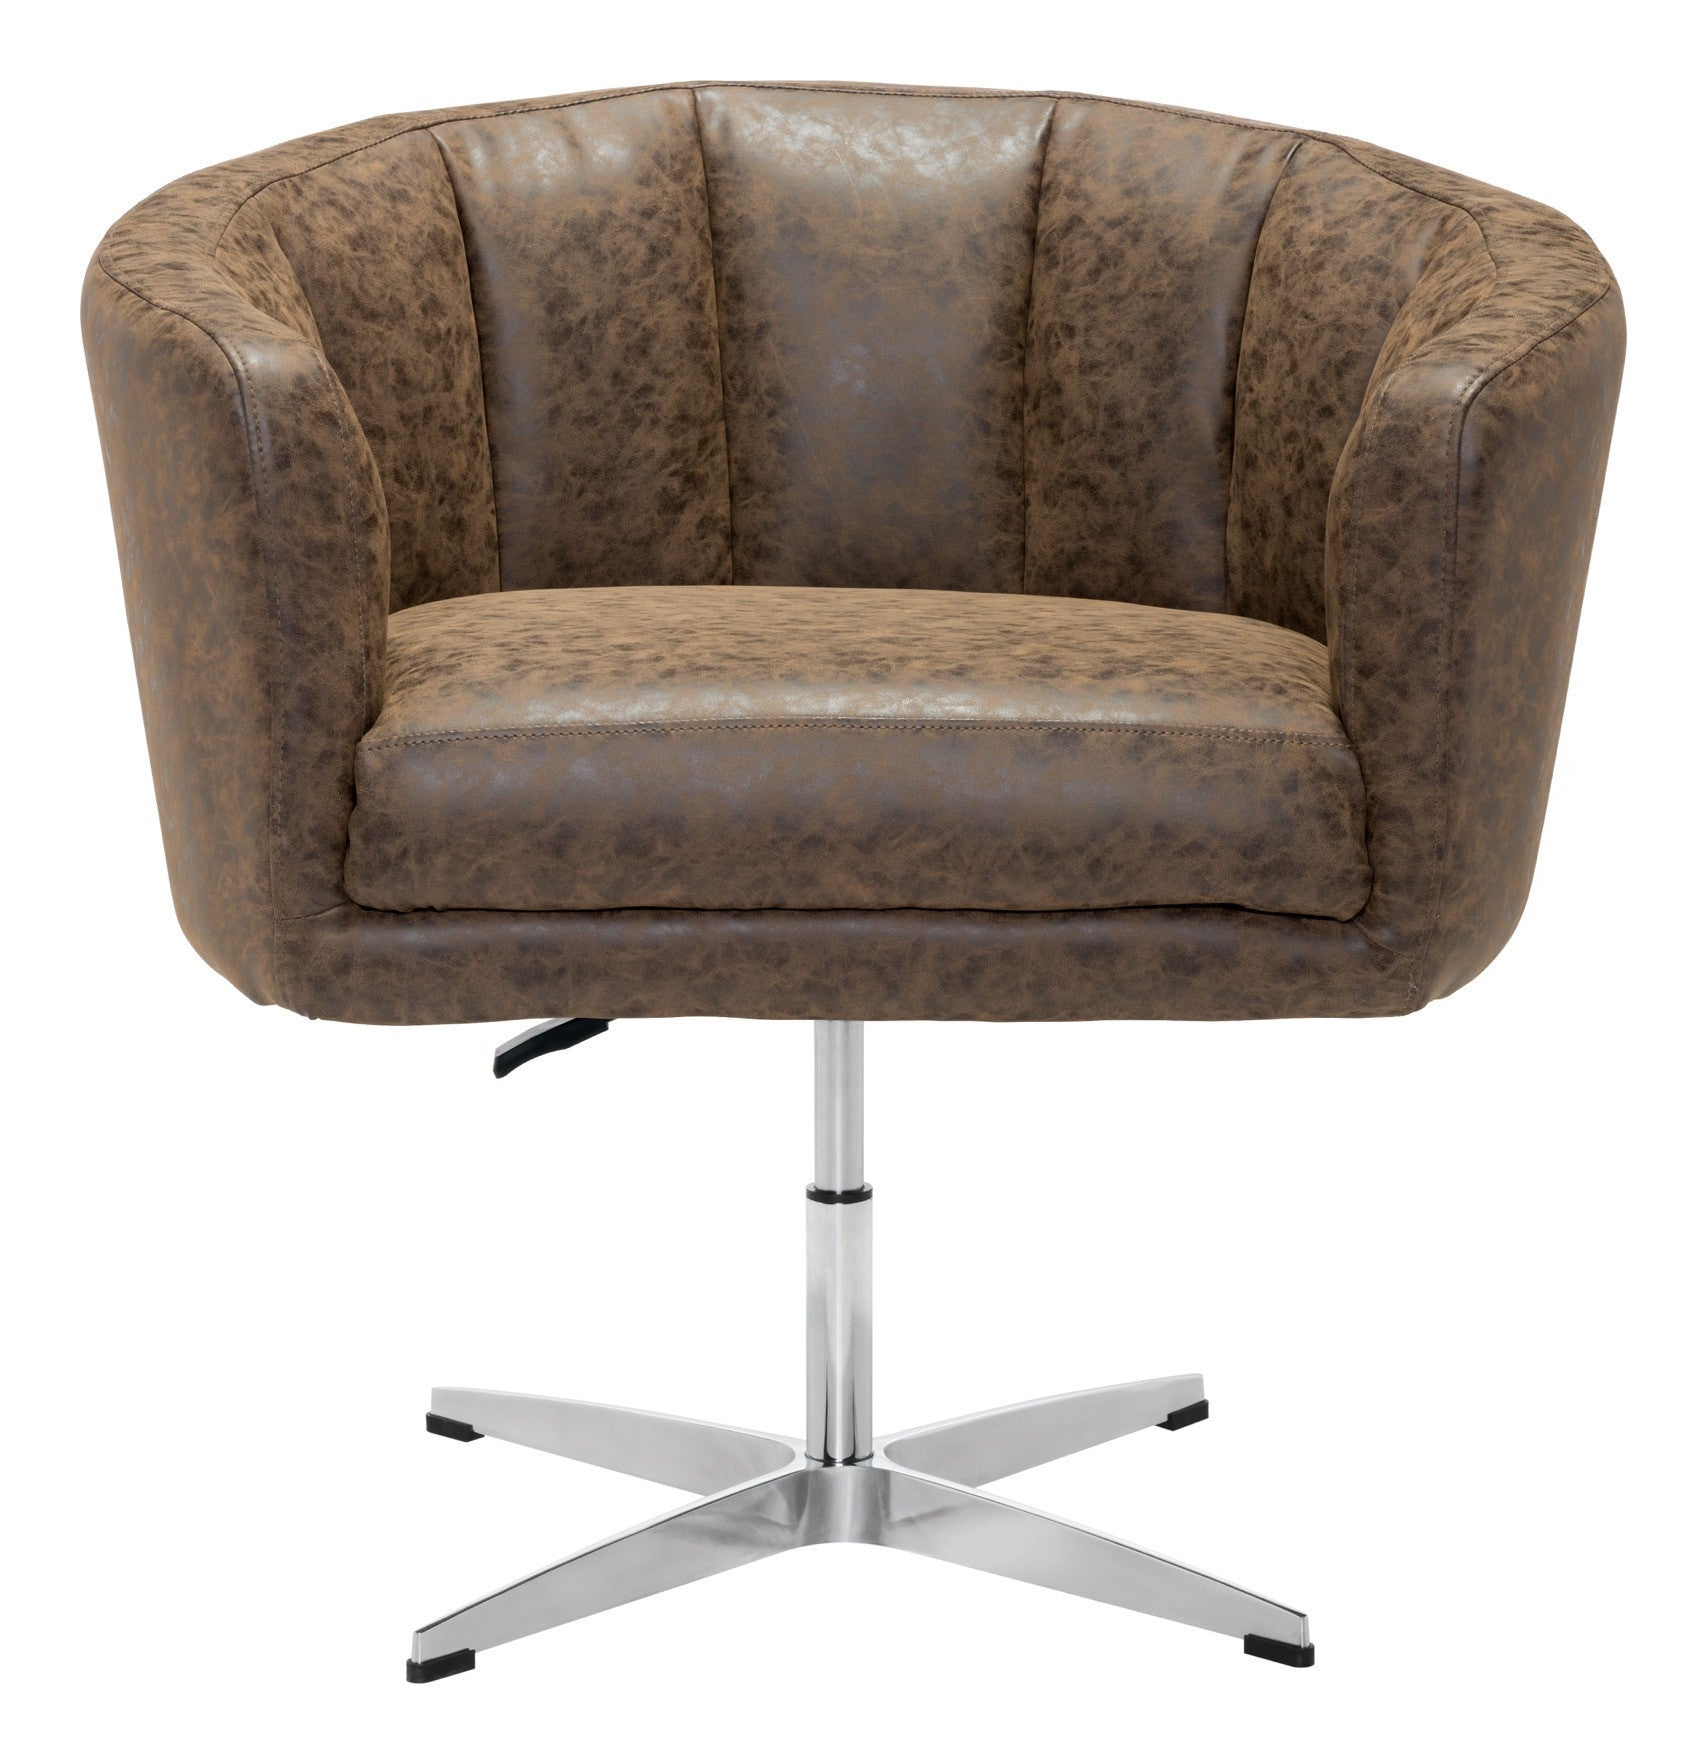 Modern Contemporary Rustic & Industrial Accent Chairs